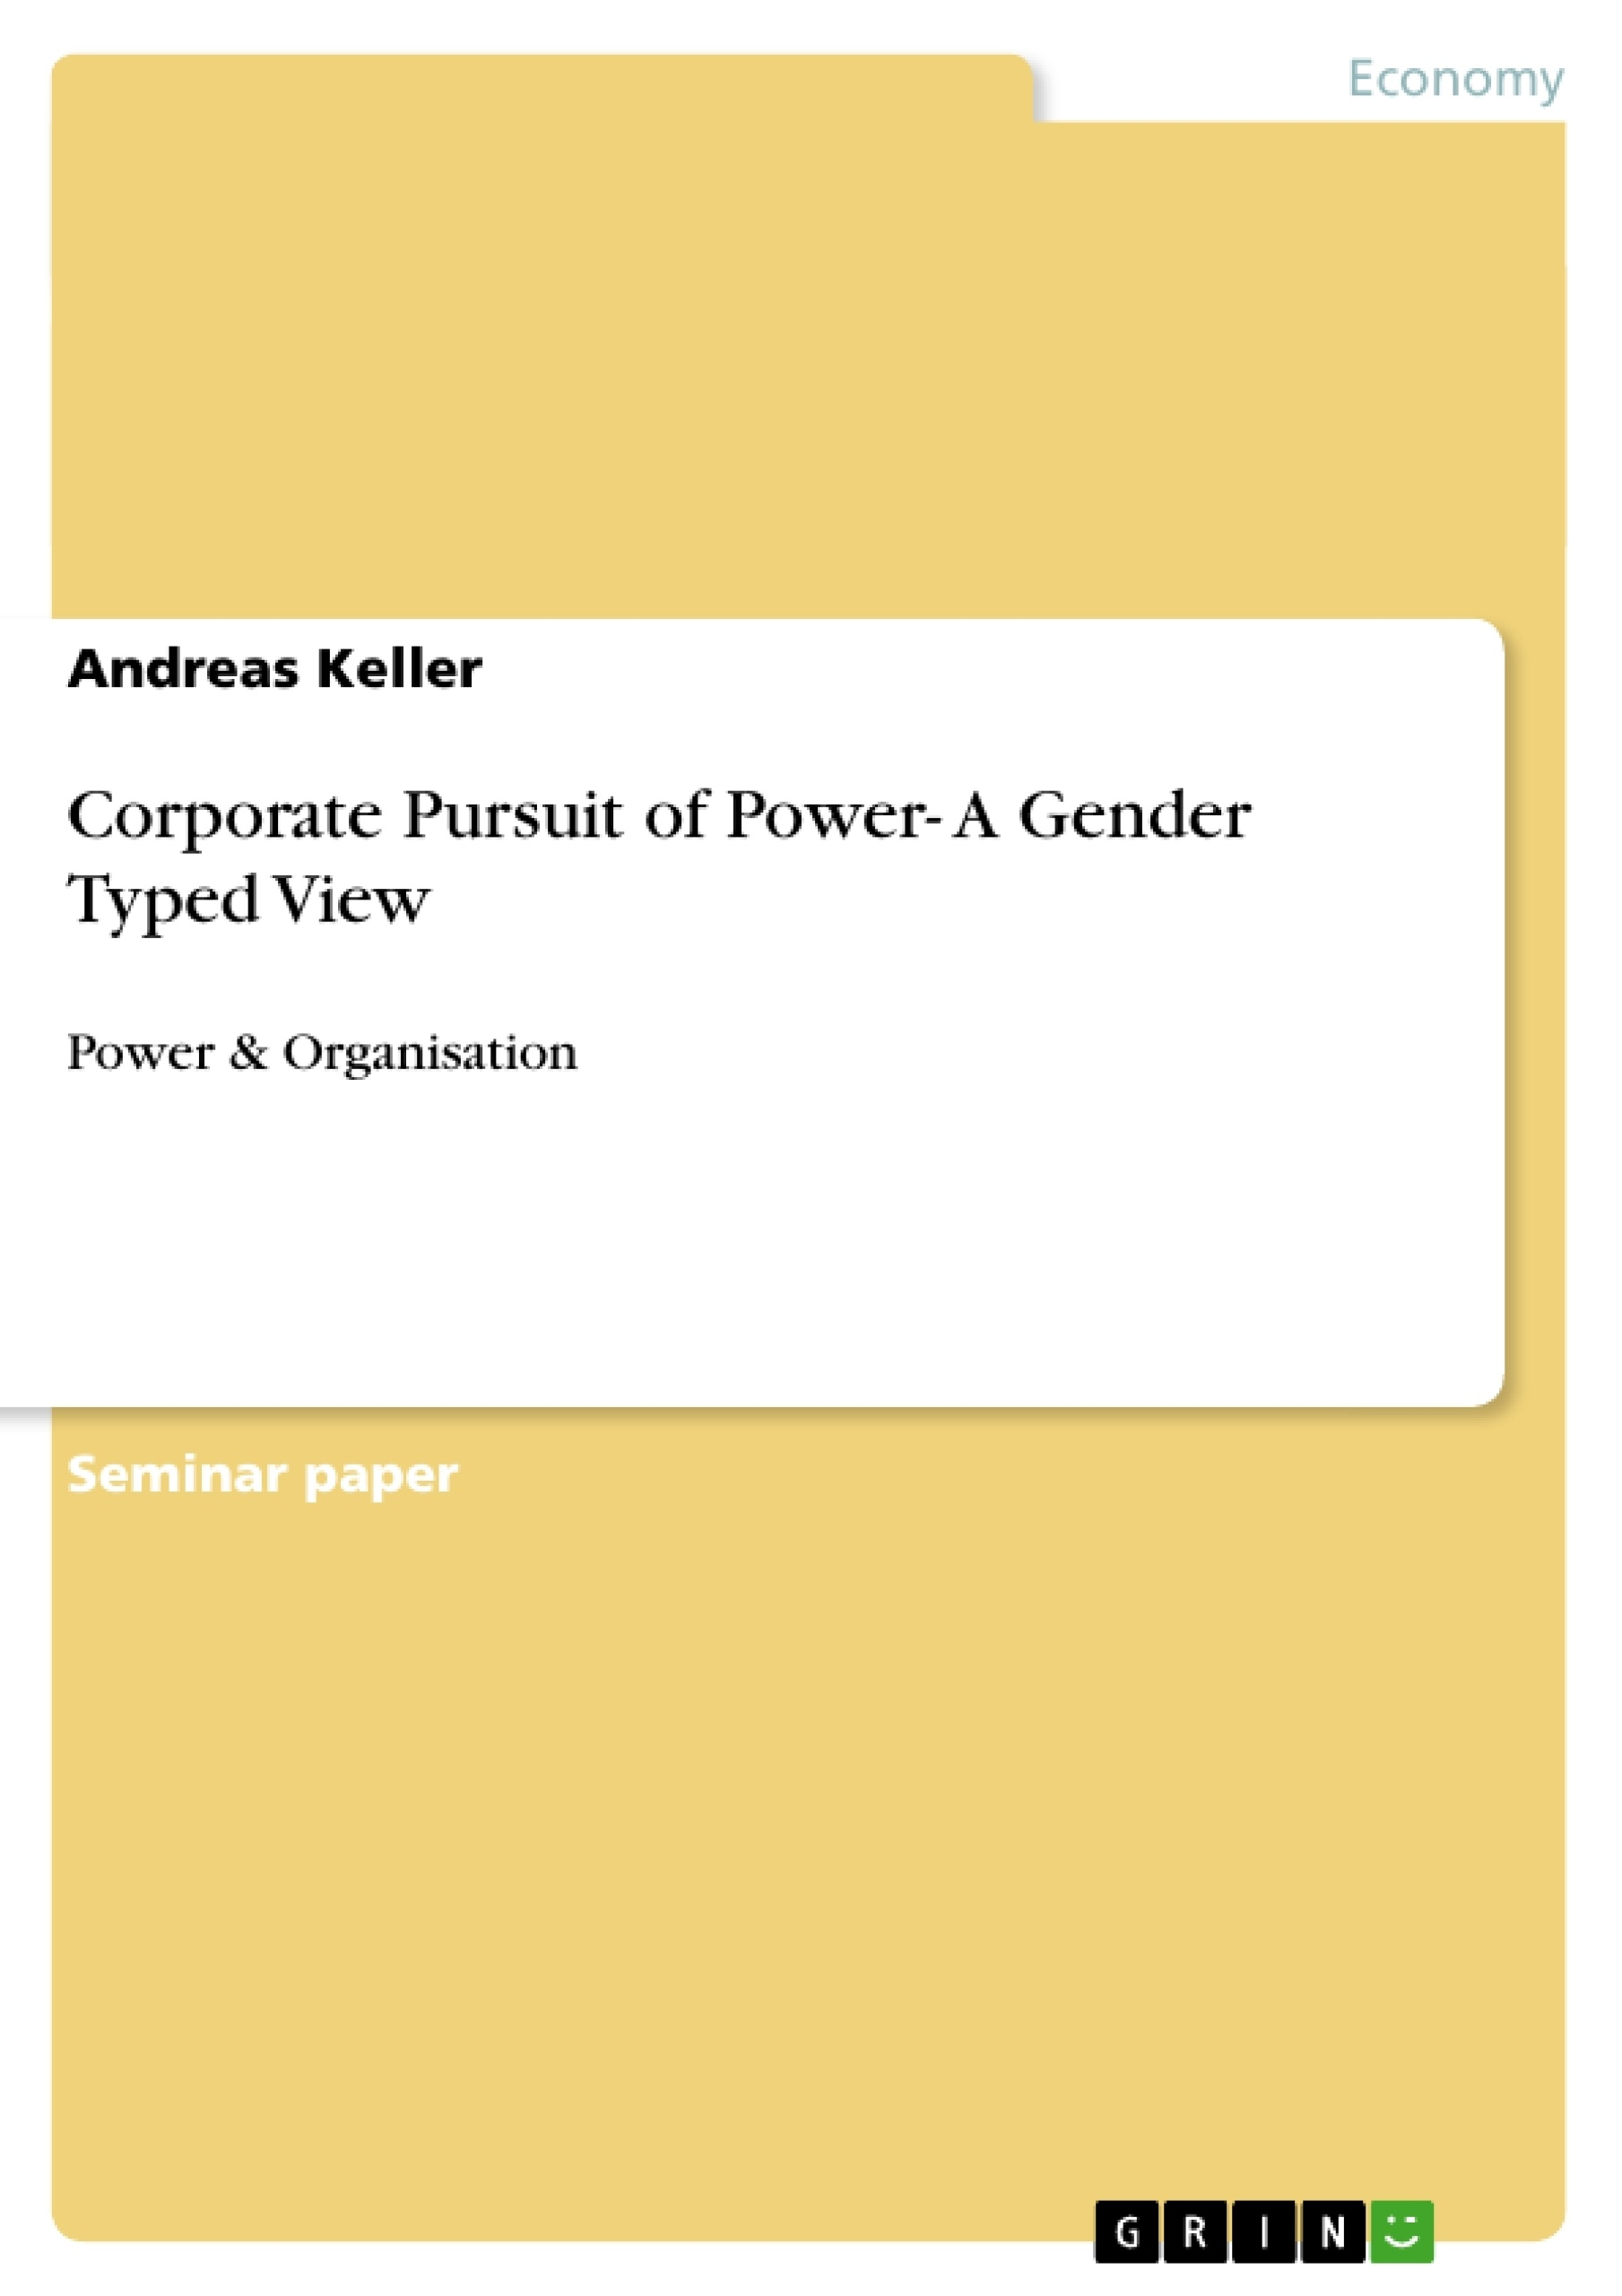 Title: Corporate Pursuit of Power- A Gender Typed View